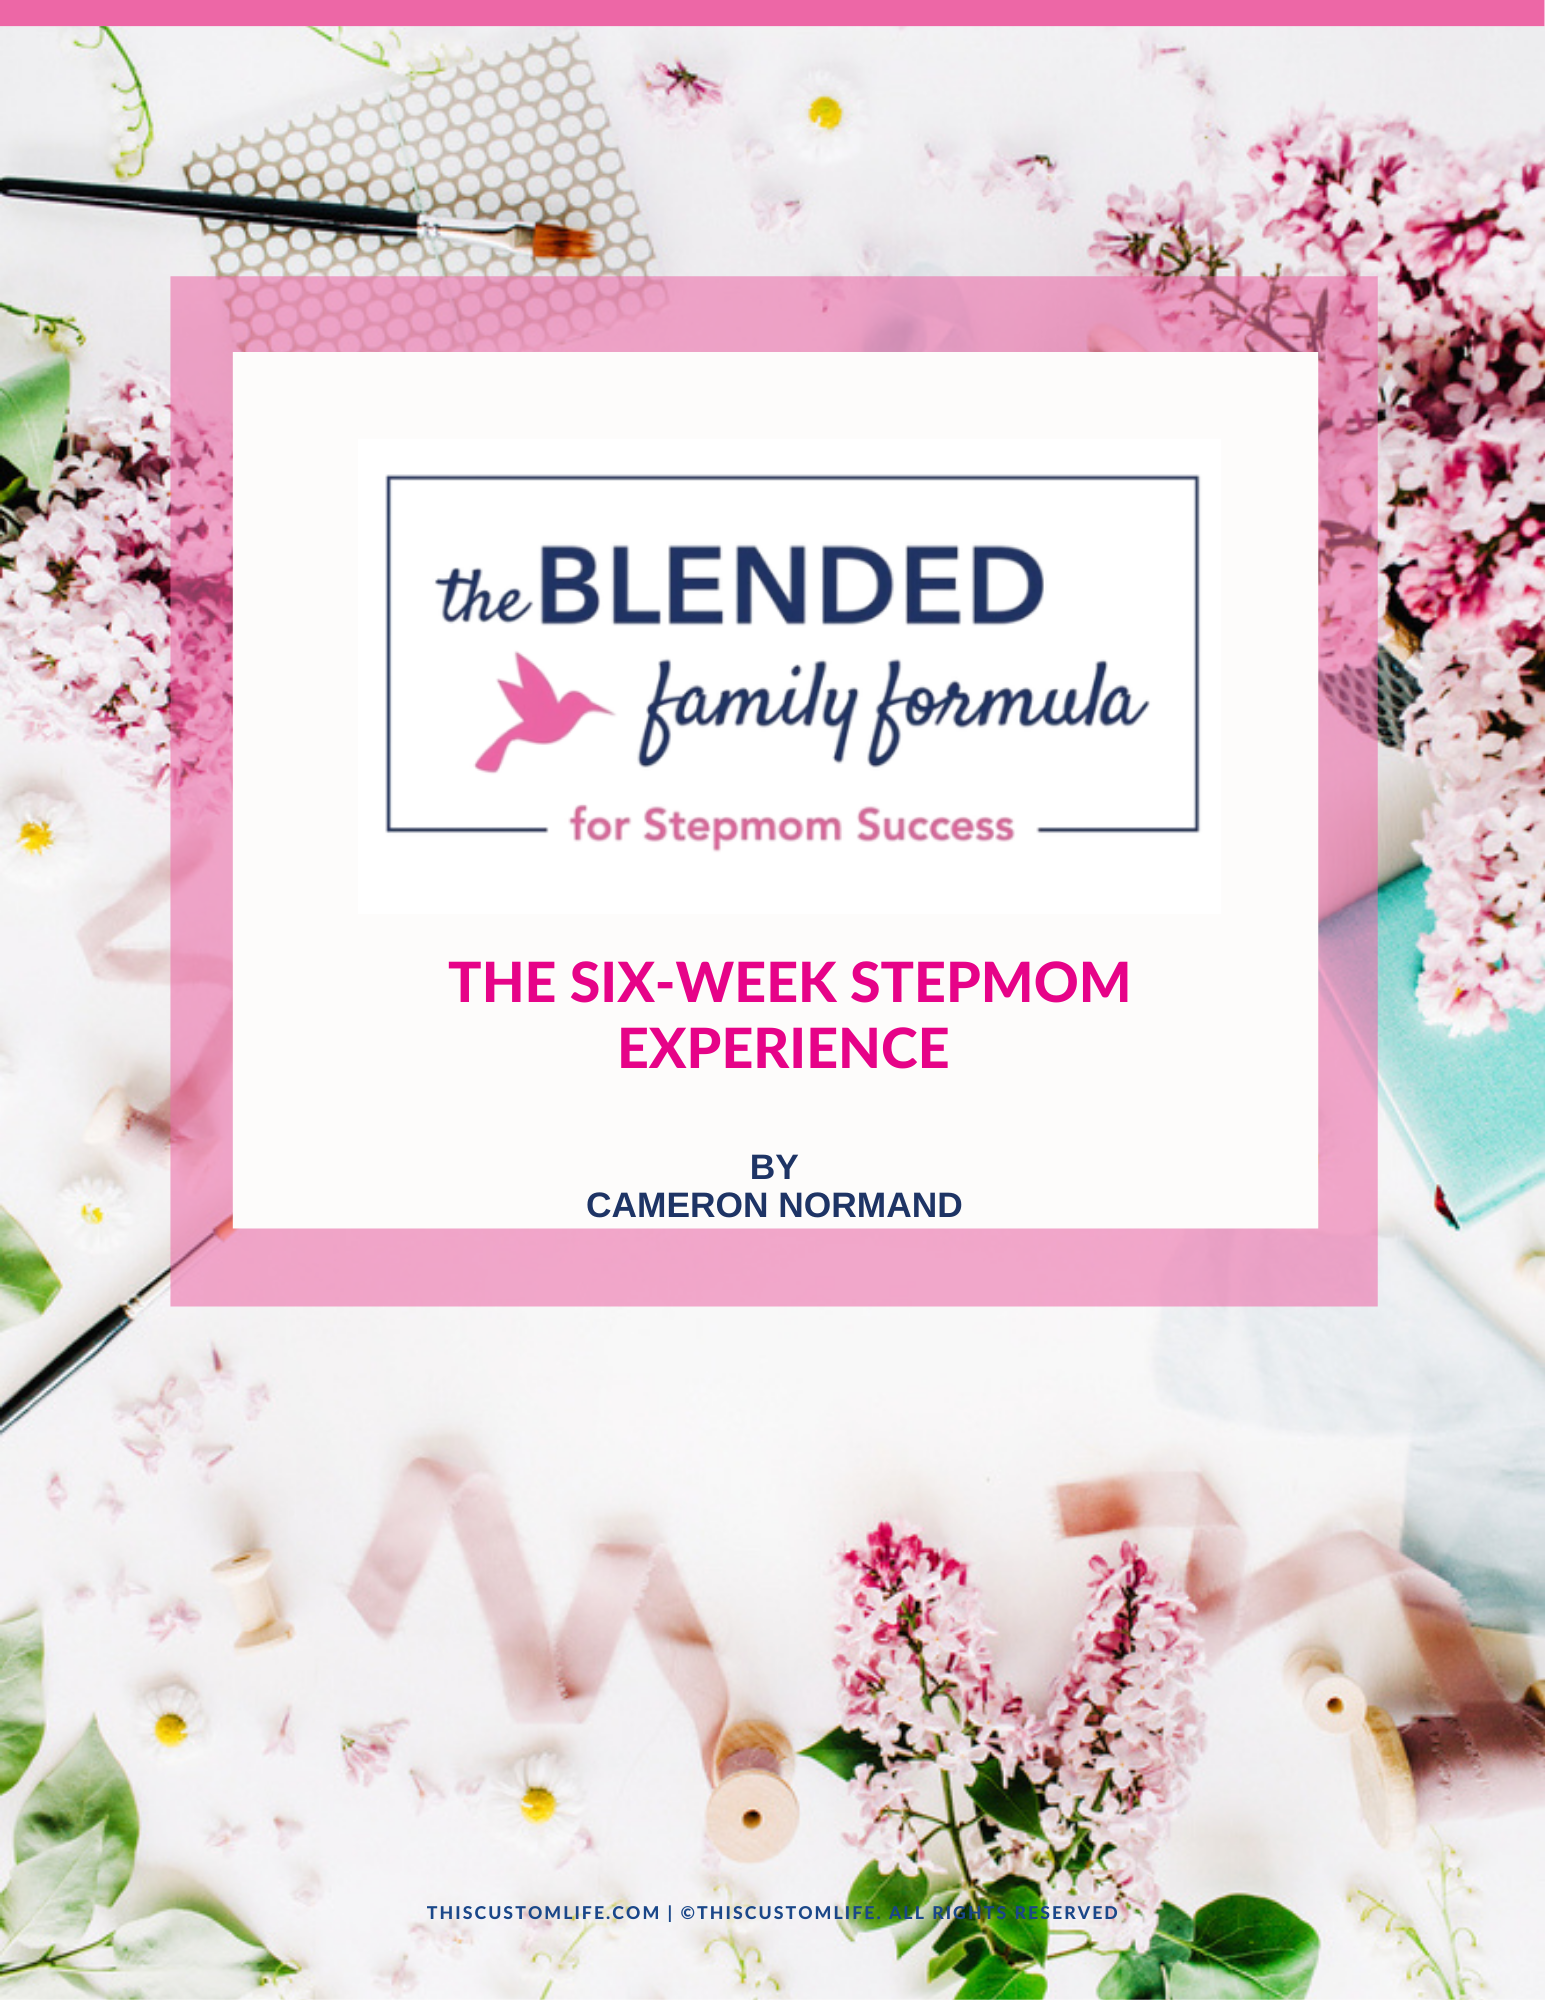 SIX WEEKS TO RESET YOUR STEPMOM EXPERIENCE